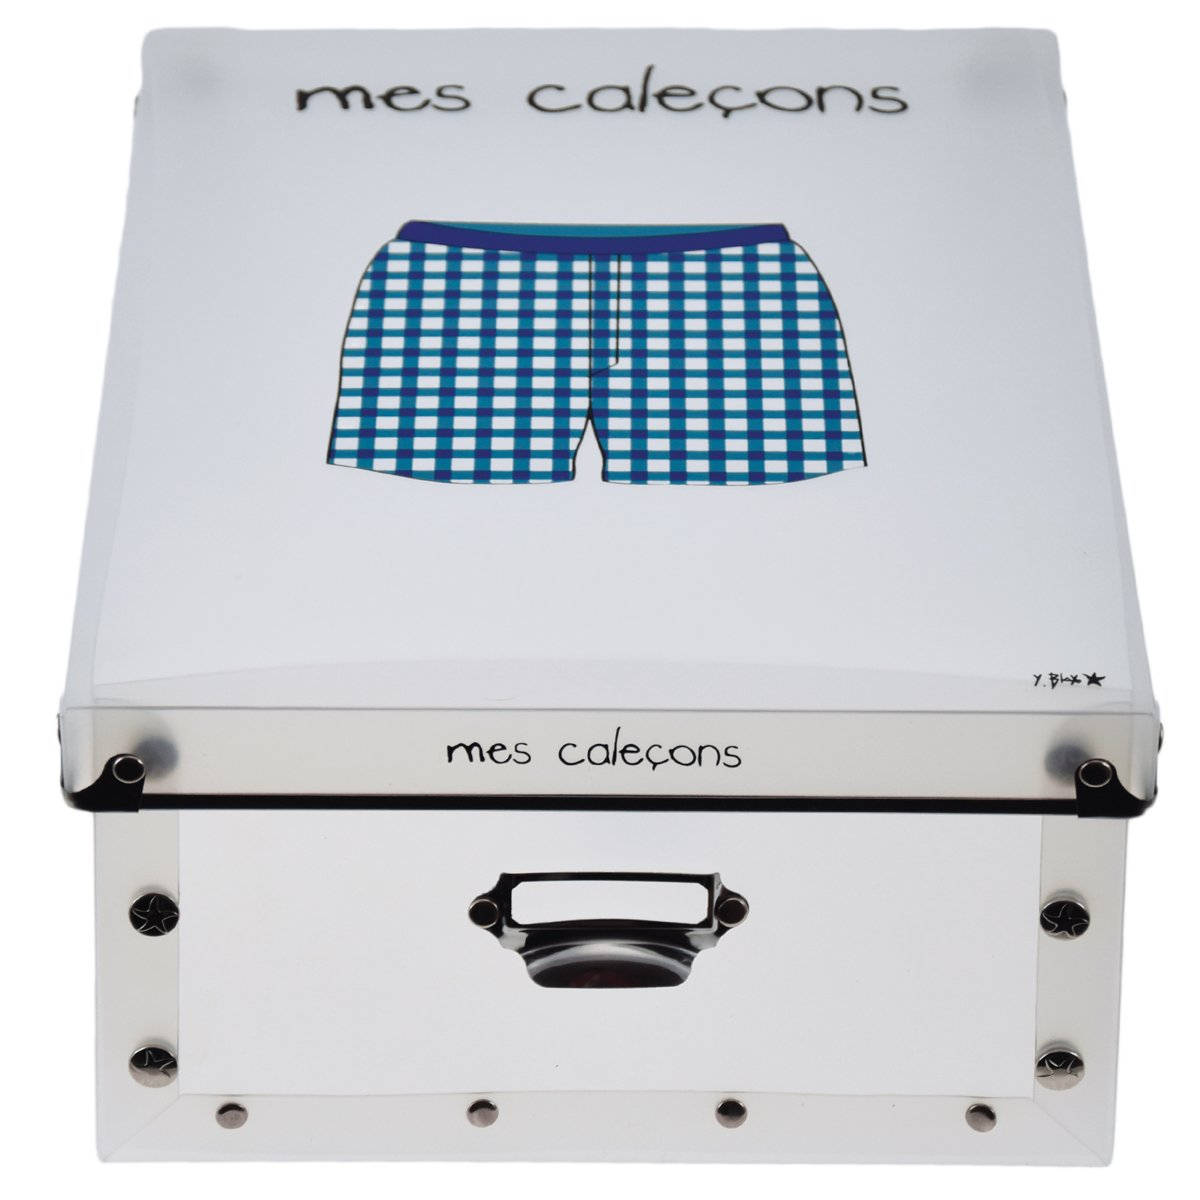 34,5 x 26 x 14 cm Compartiments Mes cale/çons - Incidence Paris 42330 Boite PP T3 Plastique Bleu